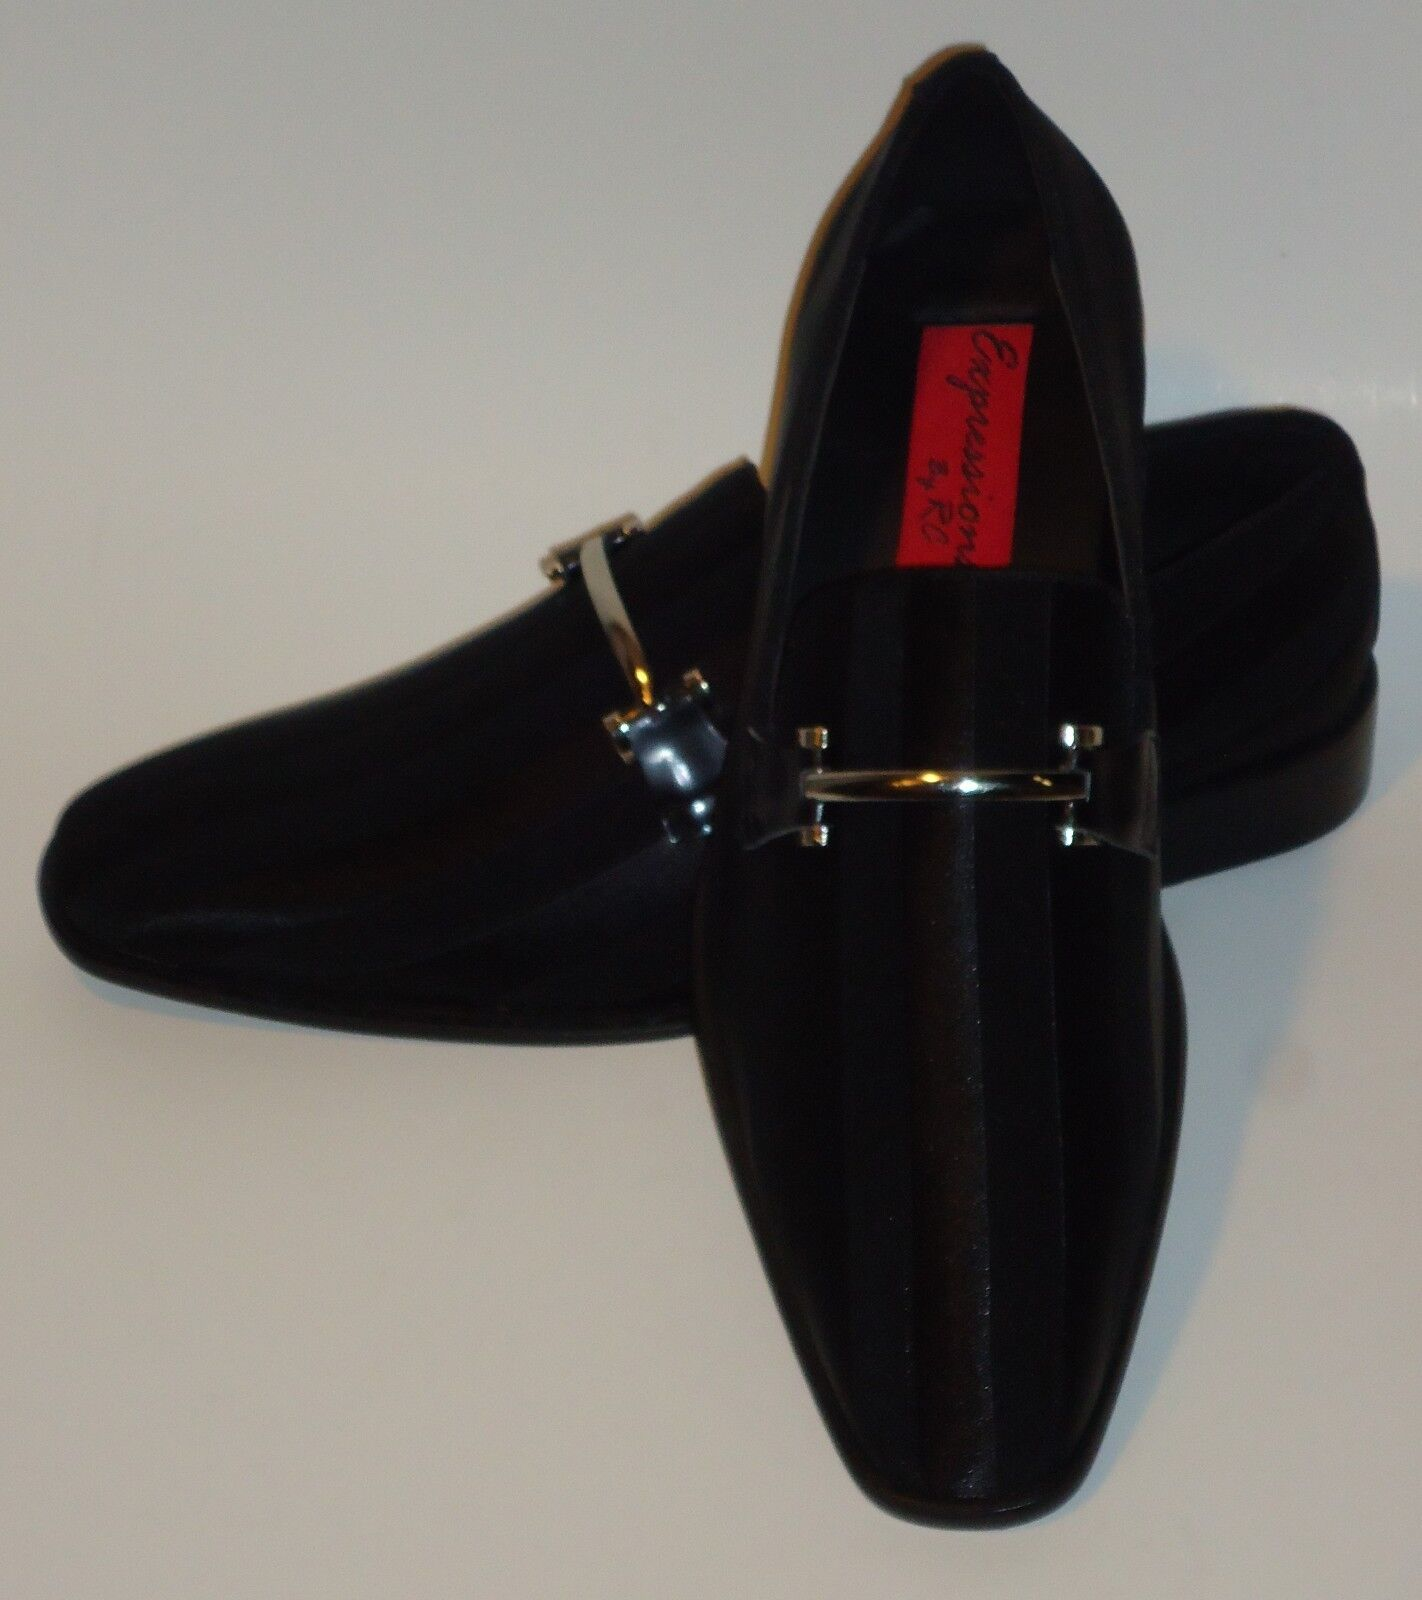 Mens Amazing Loafers Black Satin Stripe Tux Dress Loafers Amazing Shoes Expressions 6757 718957